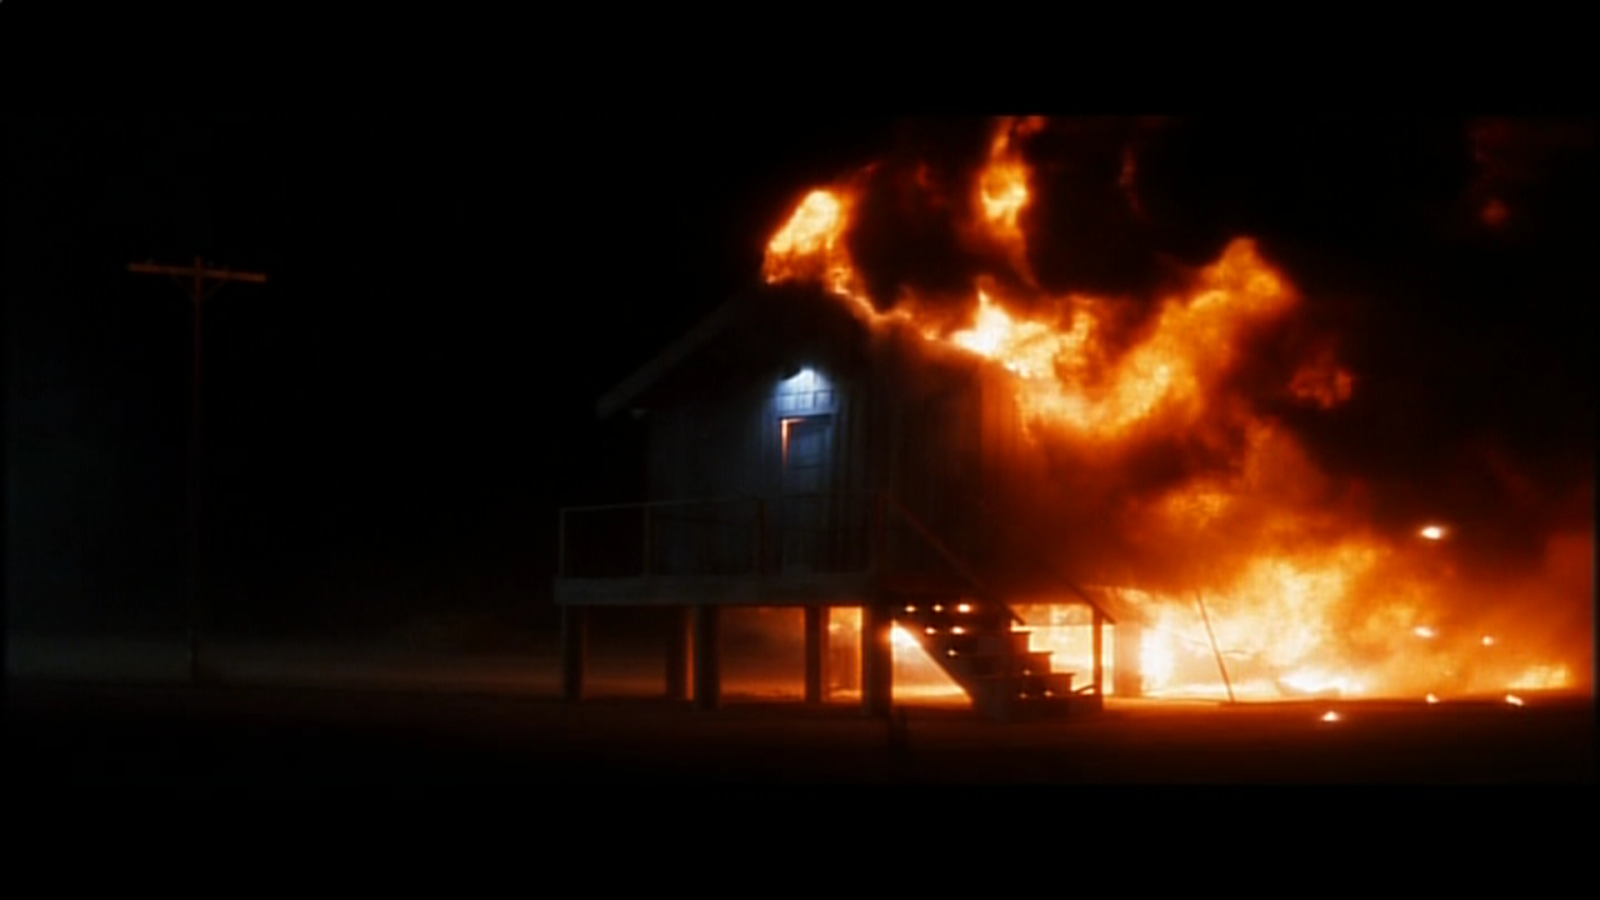 Maison en feu dans Lost Highway, de David Lynch